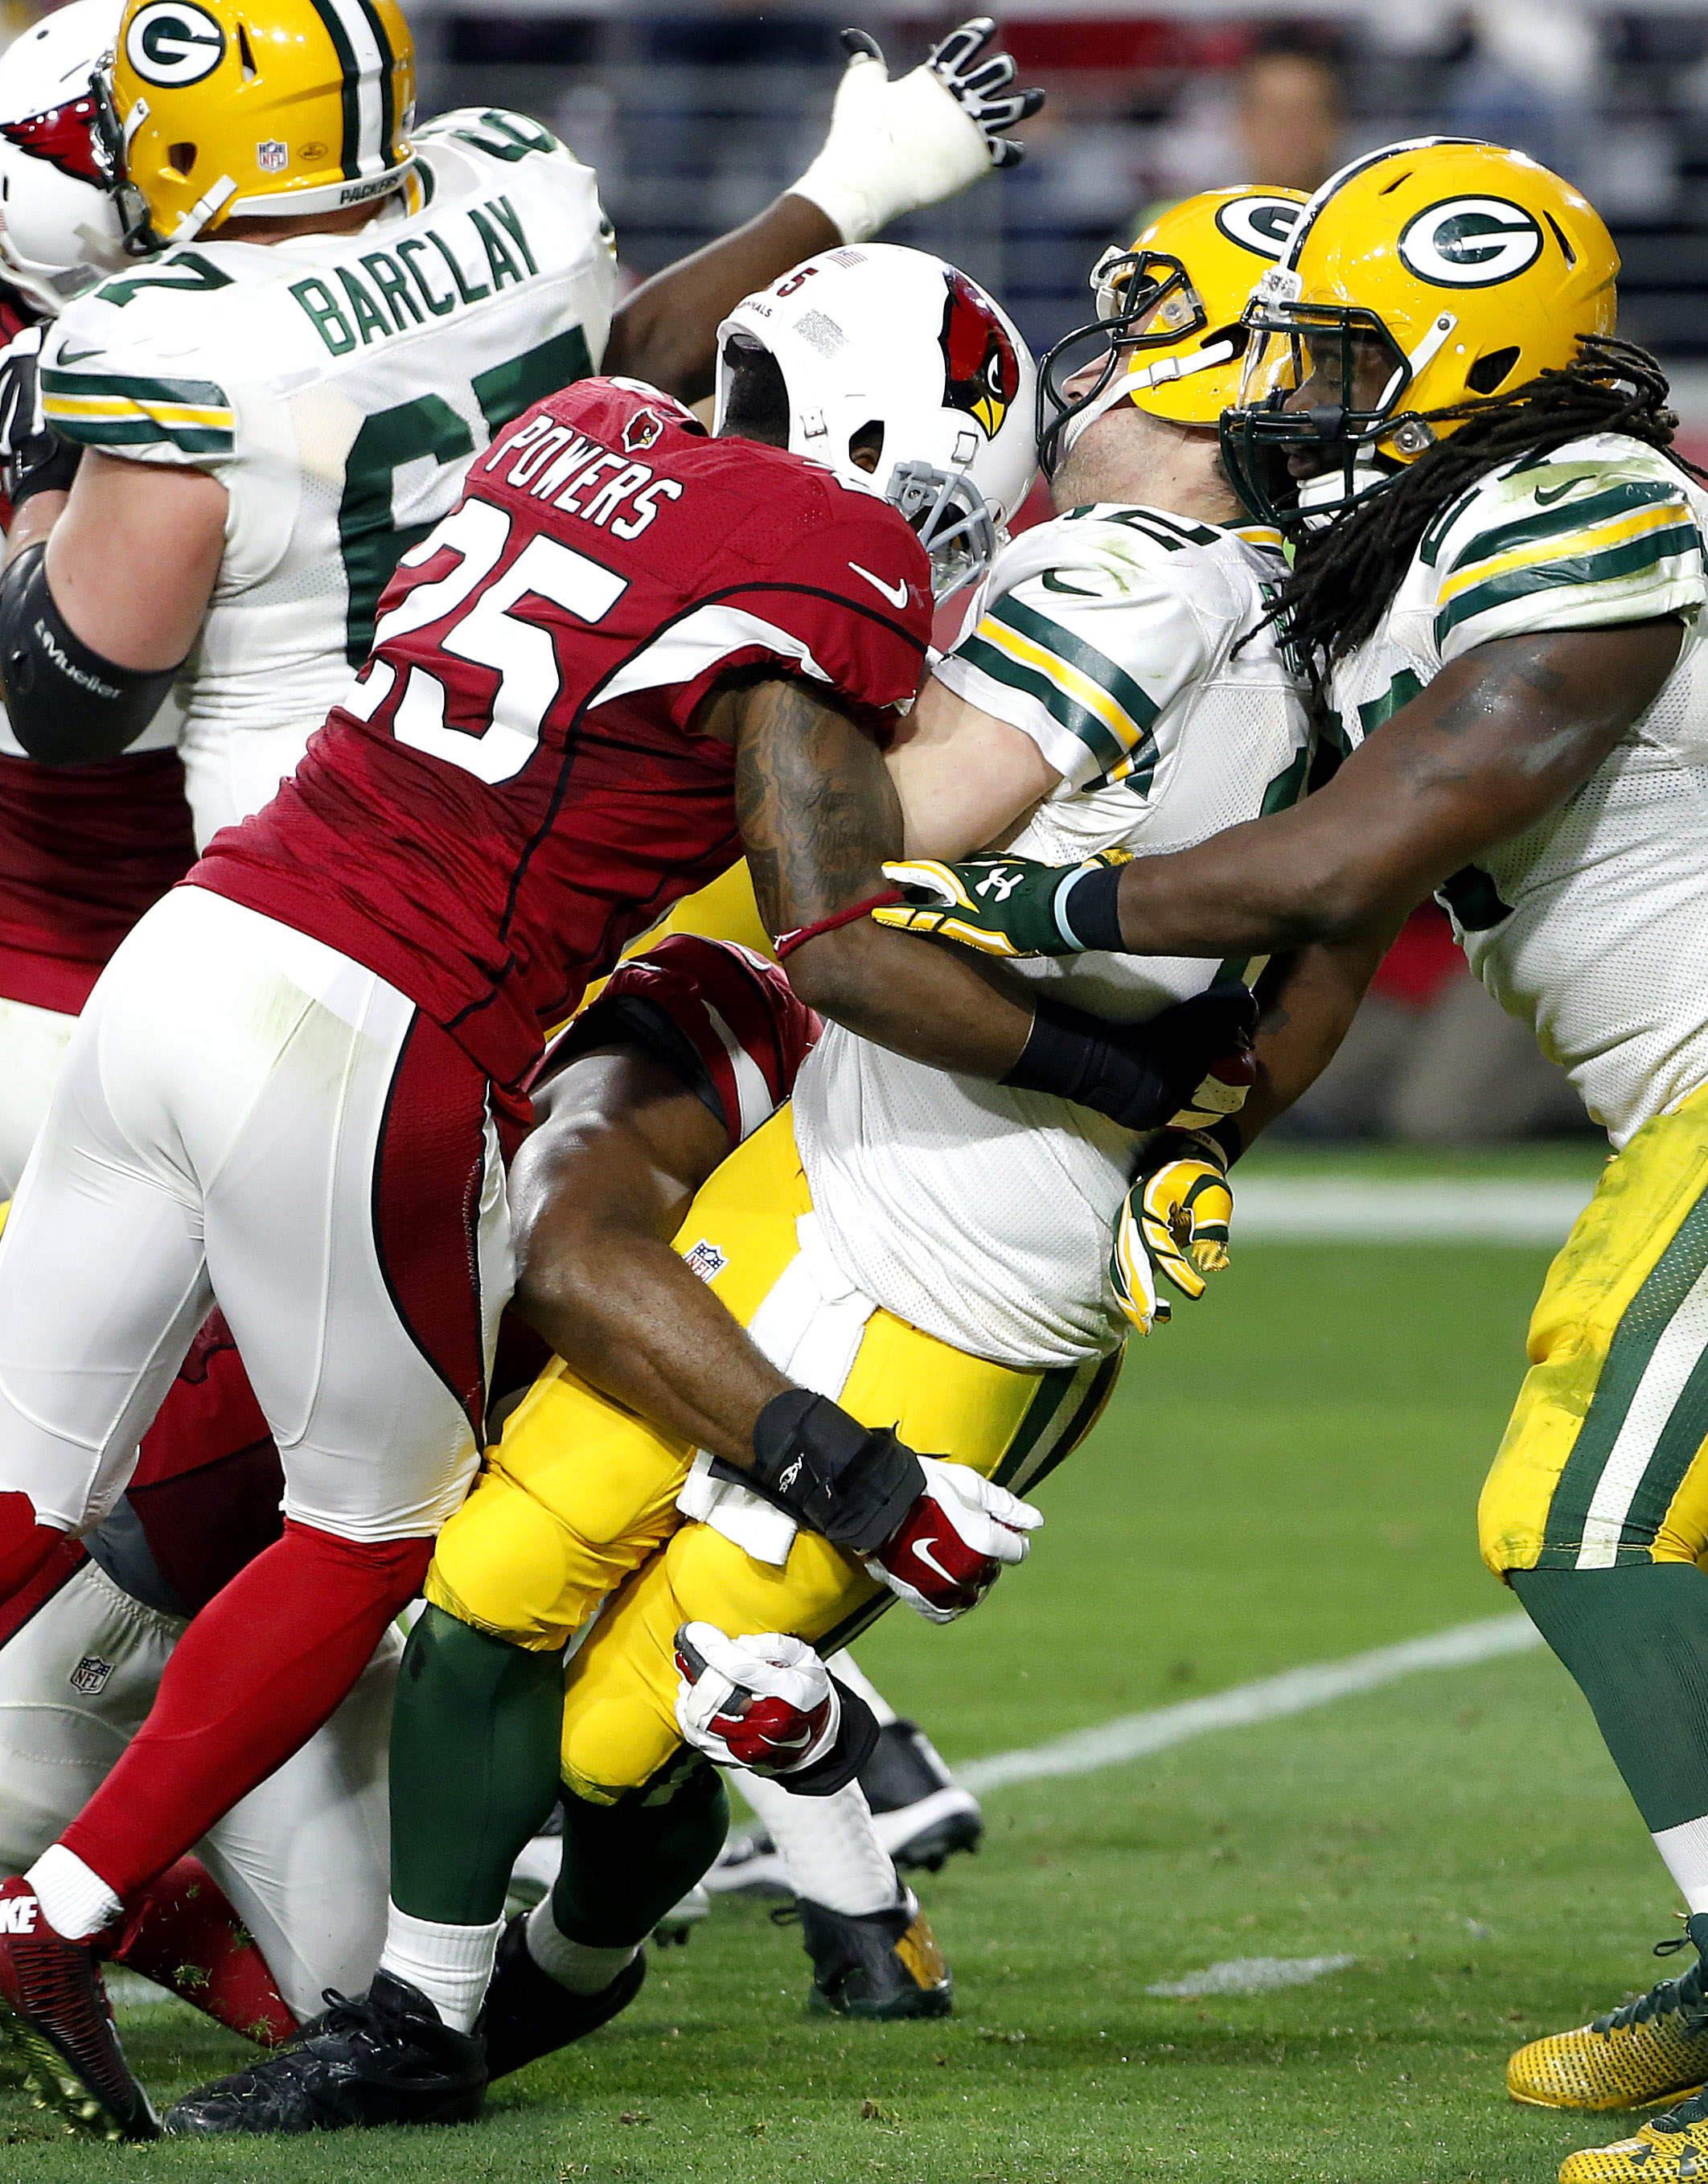 FILE - In this Dec. 27, 2015, file photo, Green Bay Packers quarterback Aaron Rodgers (12) is sacked by Arizona Cardinals cornerback Jerraud Powers (25) during the second half of an NFL football game, in Glendale, Ariz. Three weeks ago, the Arizona Cardin